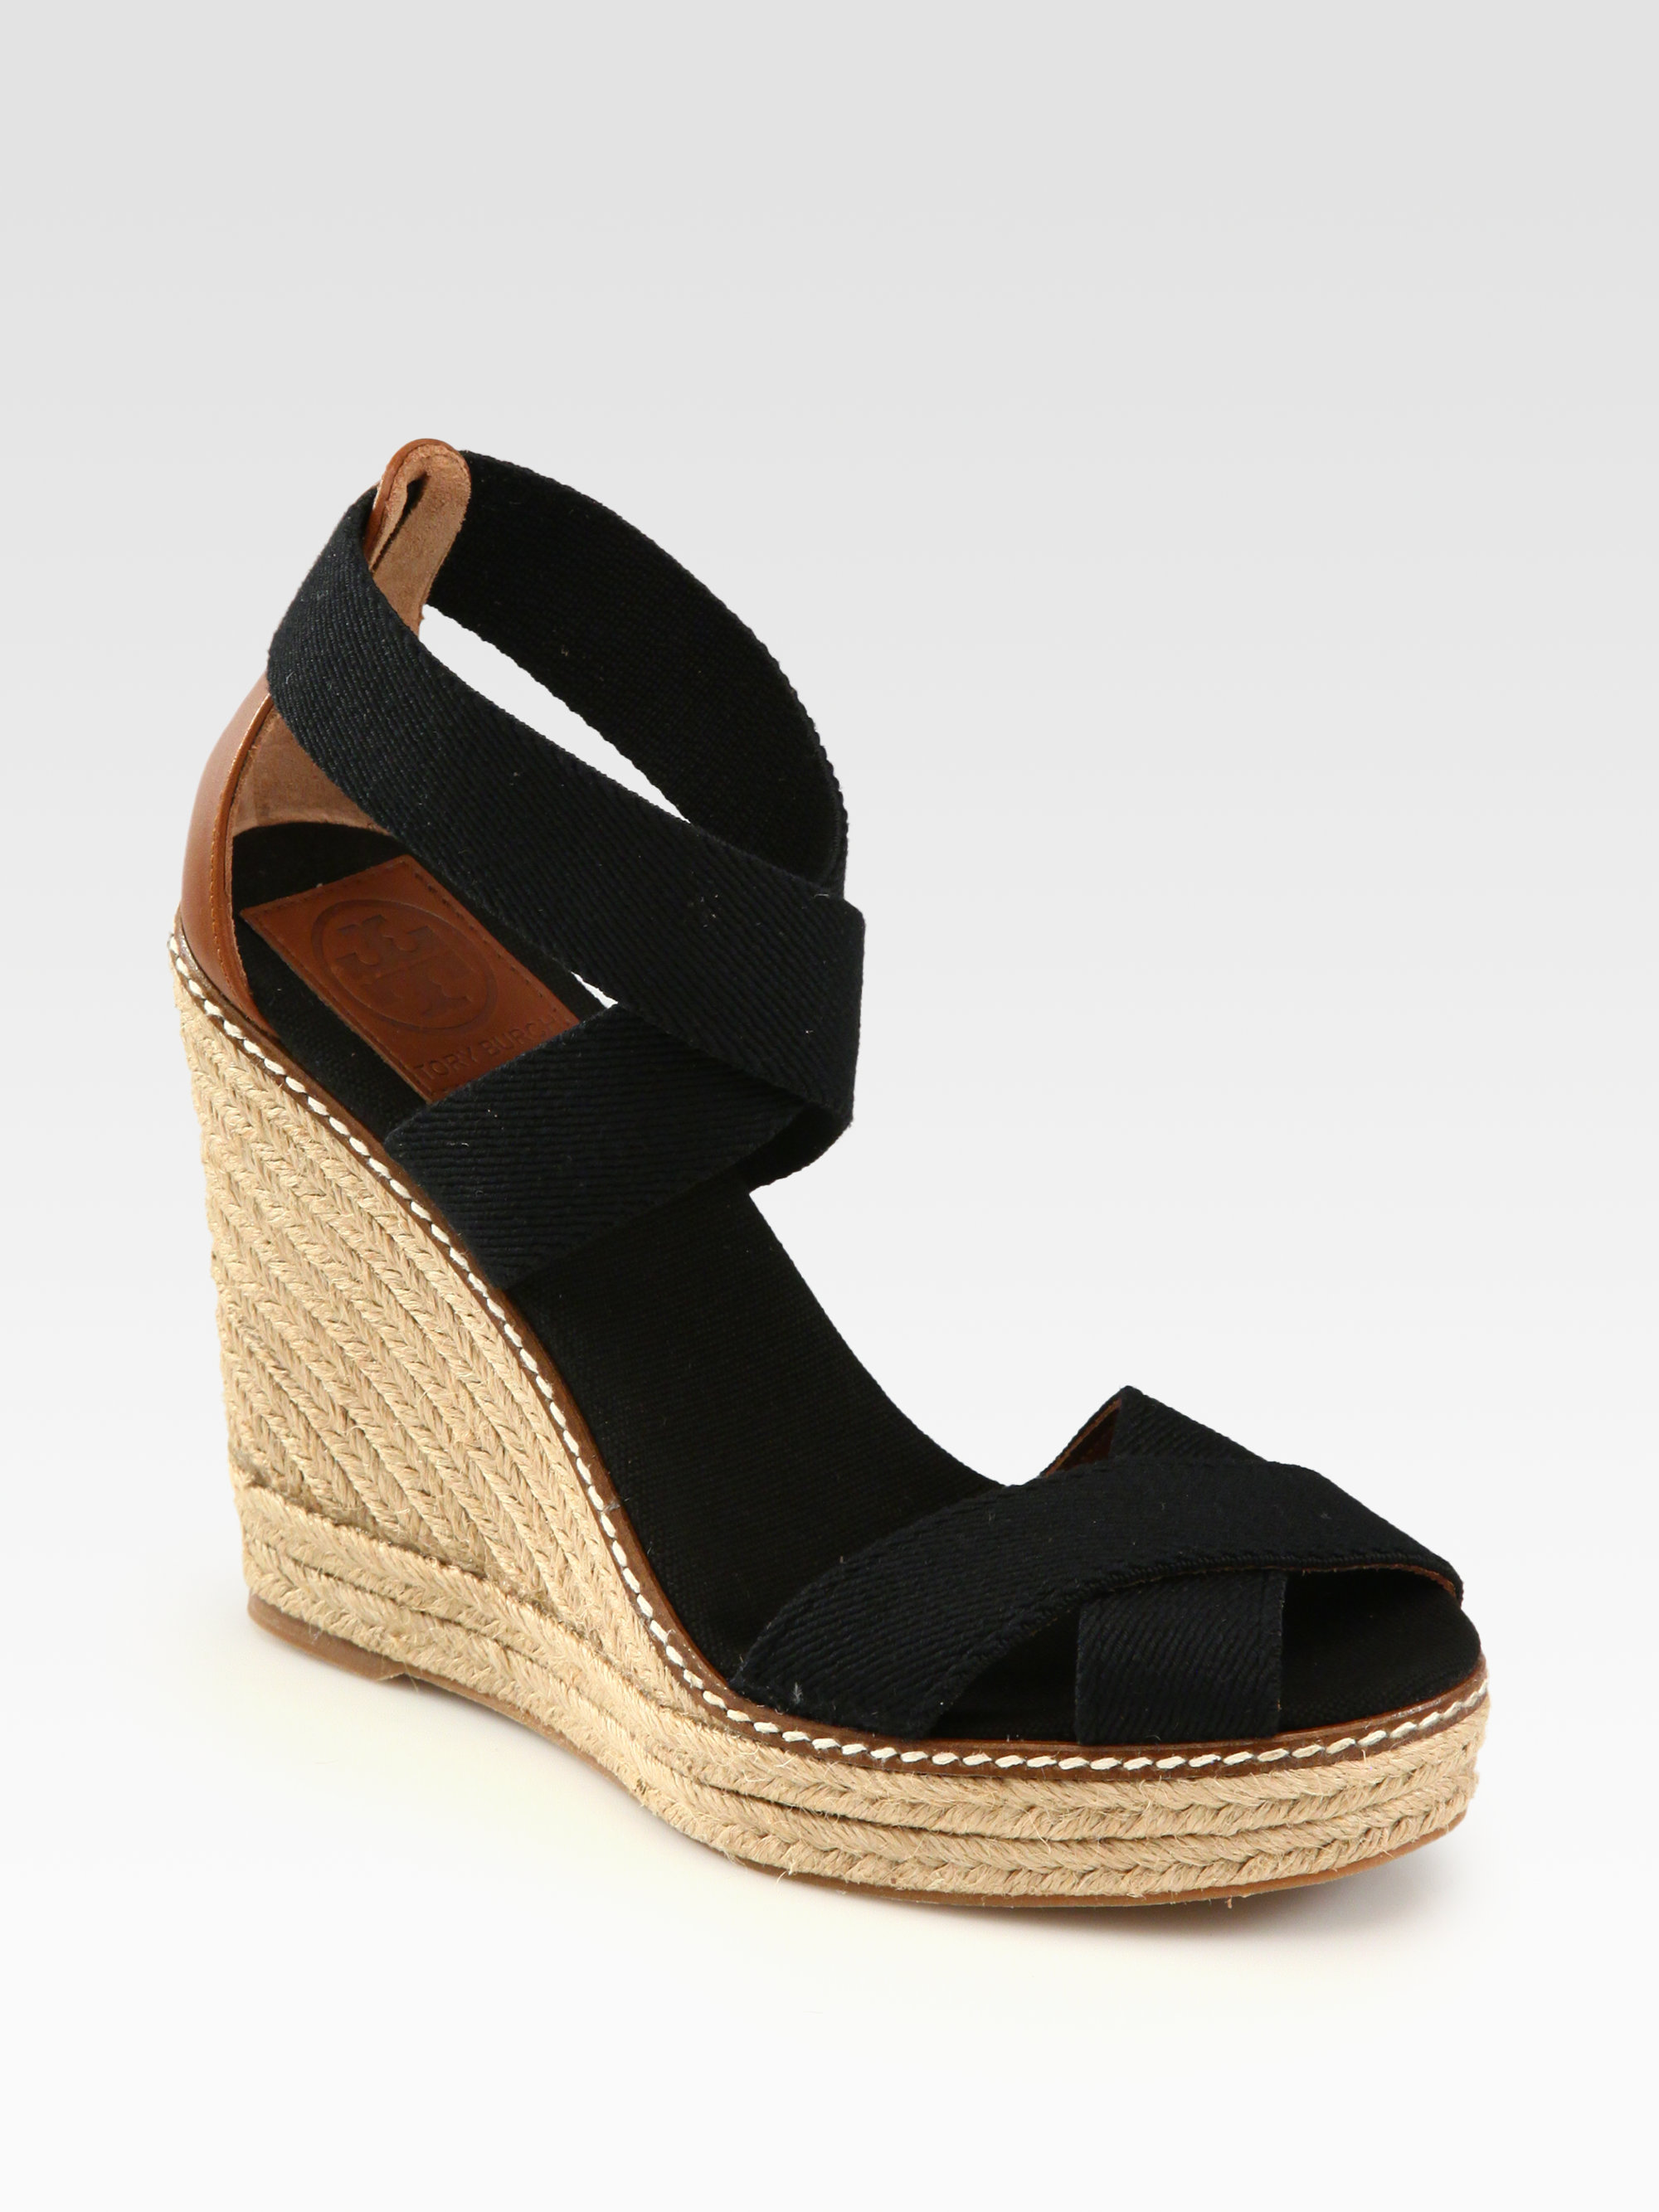 Tory Burch Adonis Canvas Espadrille Wedges In Black Lyst